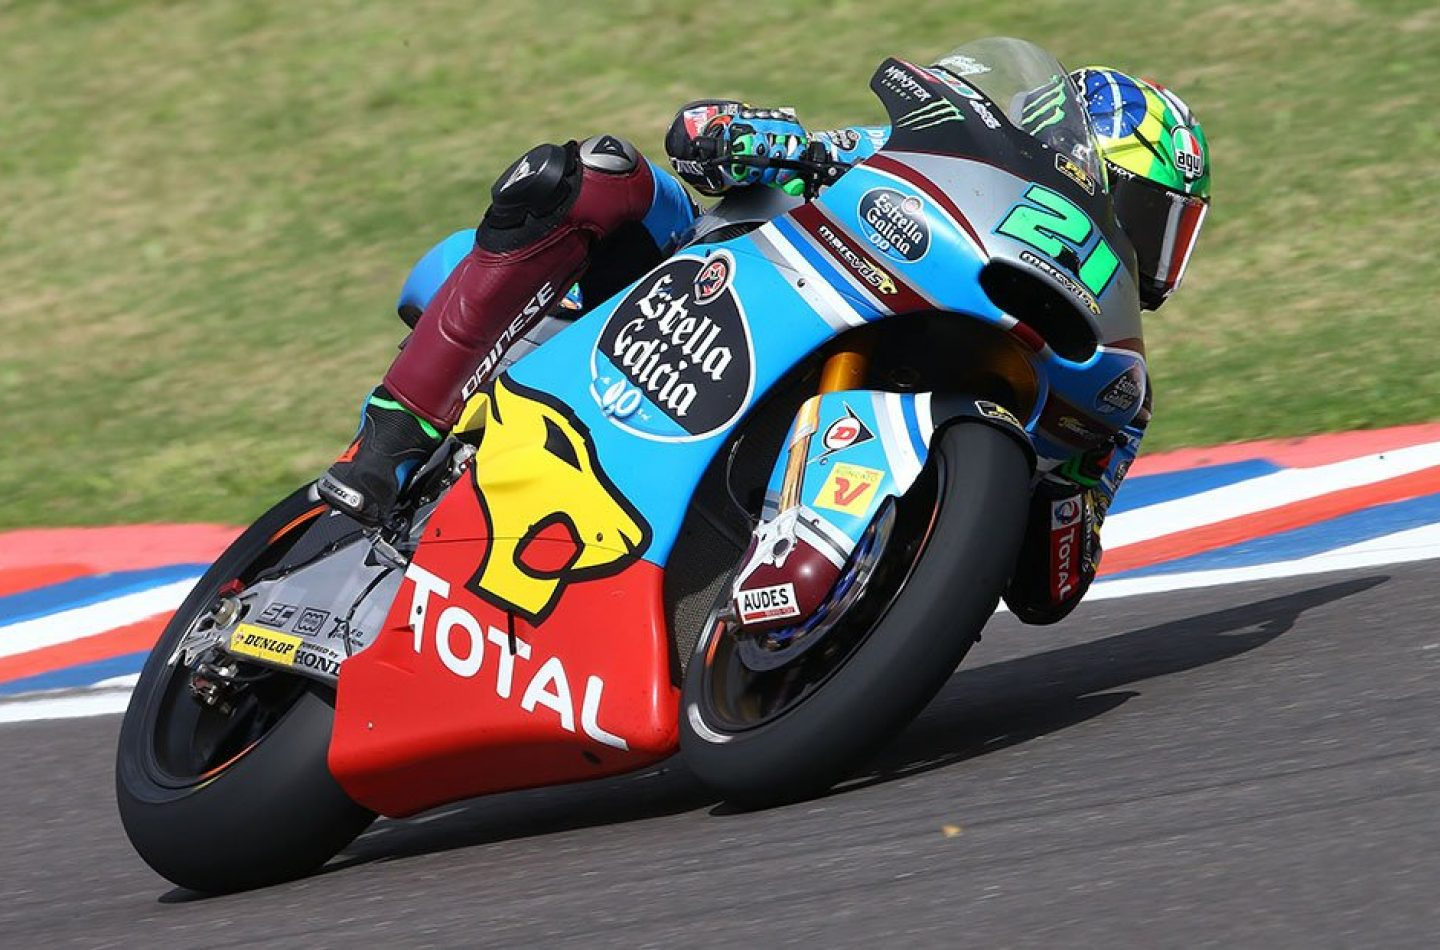 Moto2 | GP Germania, Morbidelli fantastica pole su Marquez e Cortese